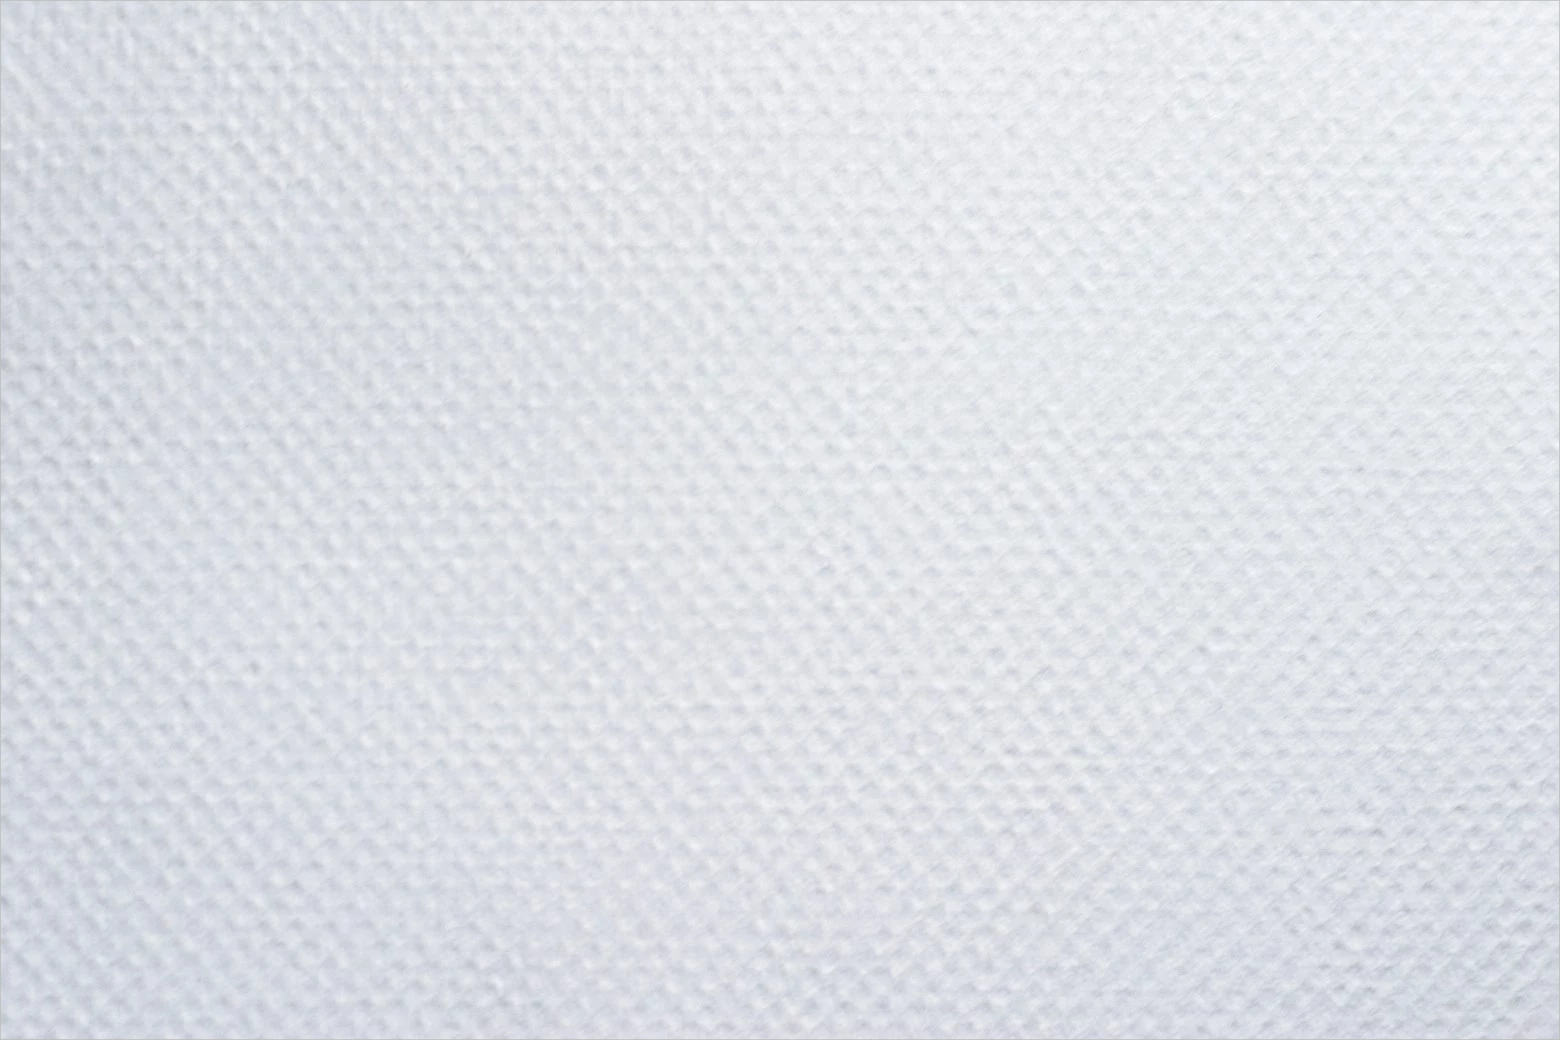 44 white textures photoshop textures patterns for Free white texture